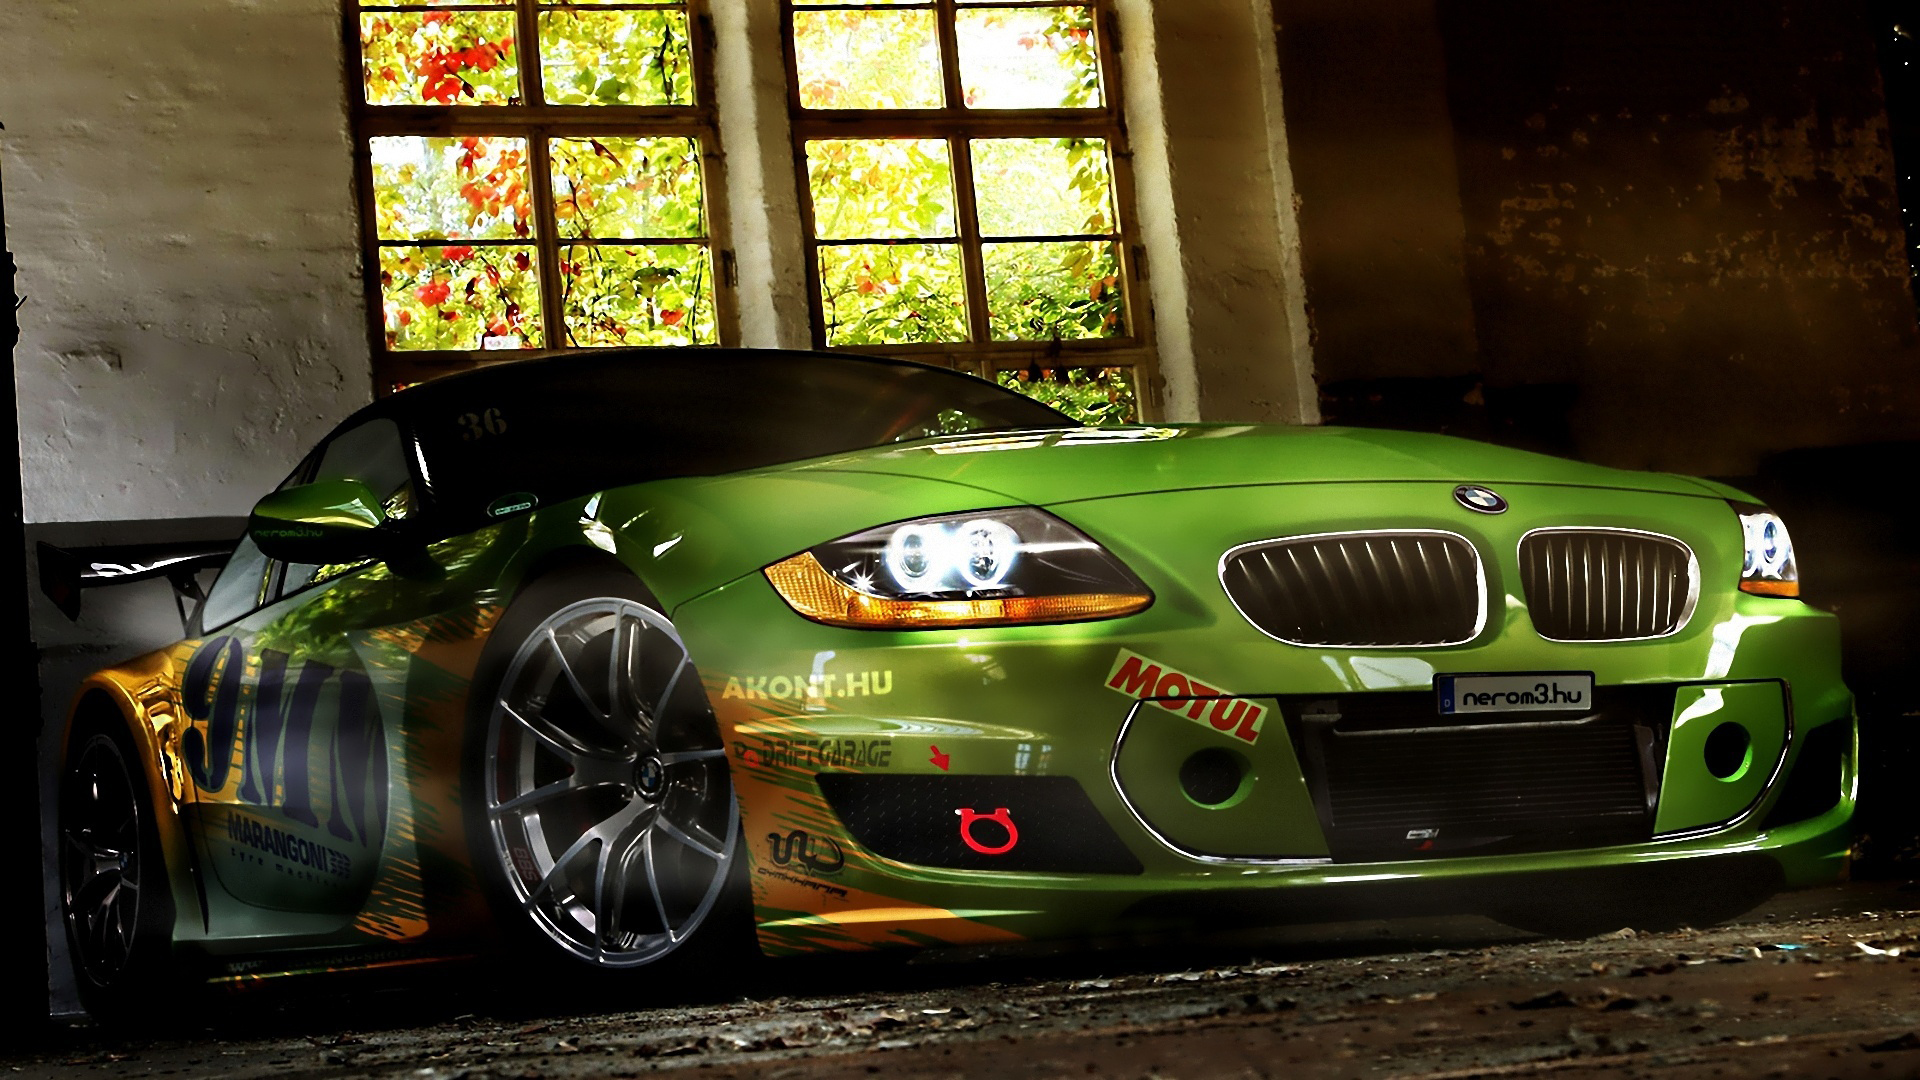 Green Bmw Modification Cars Hd Wallpapers Modified Cars Wallpapers Hd 1920x1080 Wallpaper Teahub Io